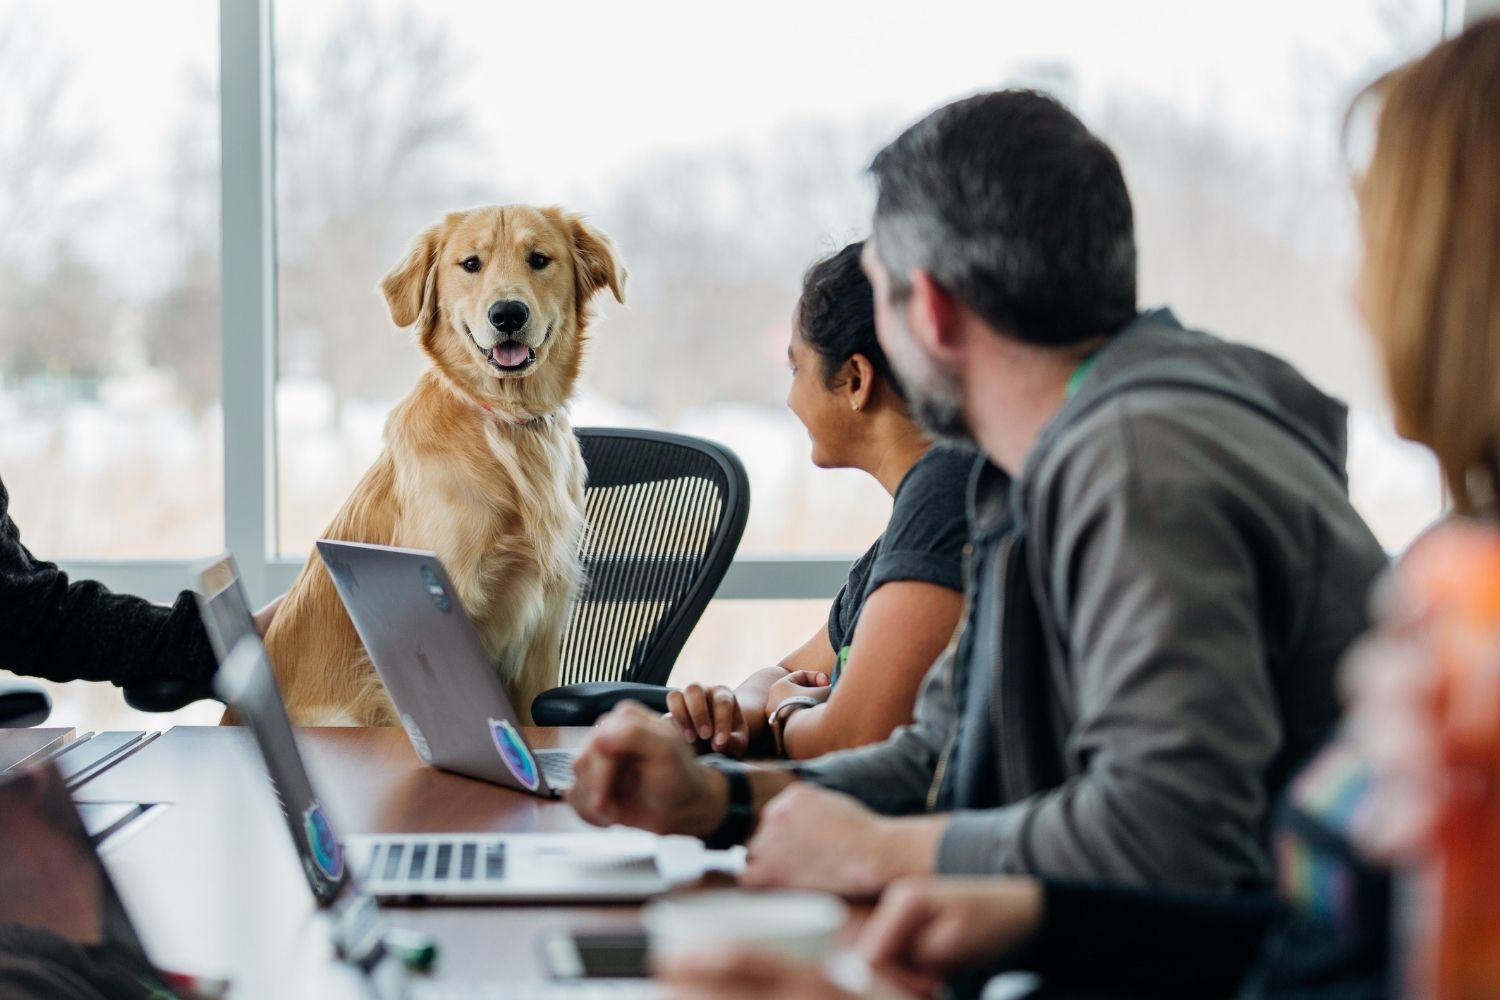 Excellent.org talks about dogs in the office and gives reasons why there should be more four-legged team members, the picture shows a dog on an office chair attending a meeting